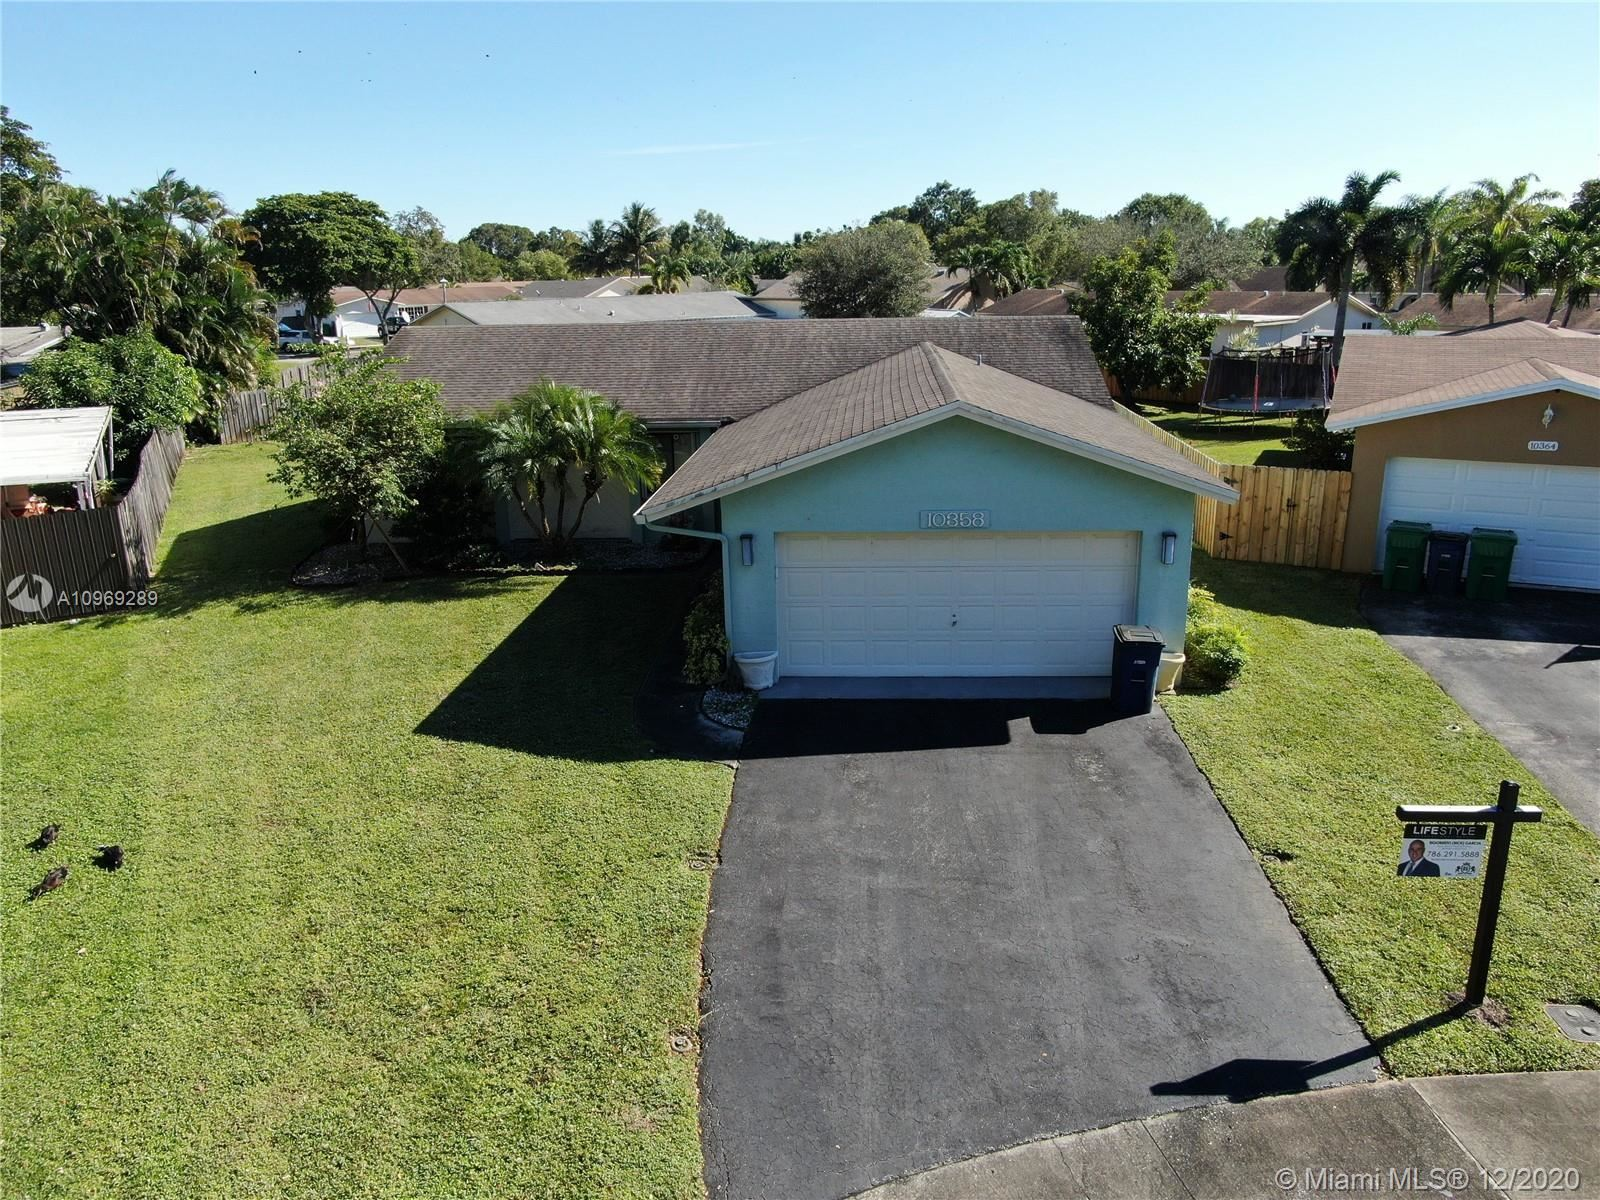 10358 SW 50th St, Cooper City, FL 33328 - #: A10969289